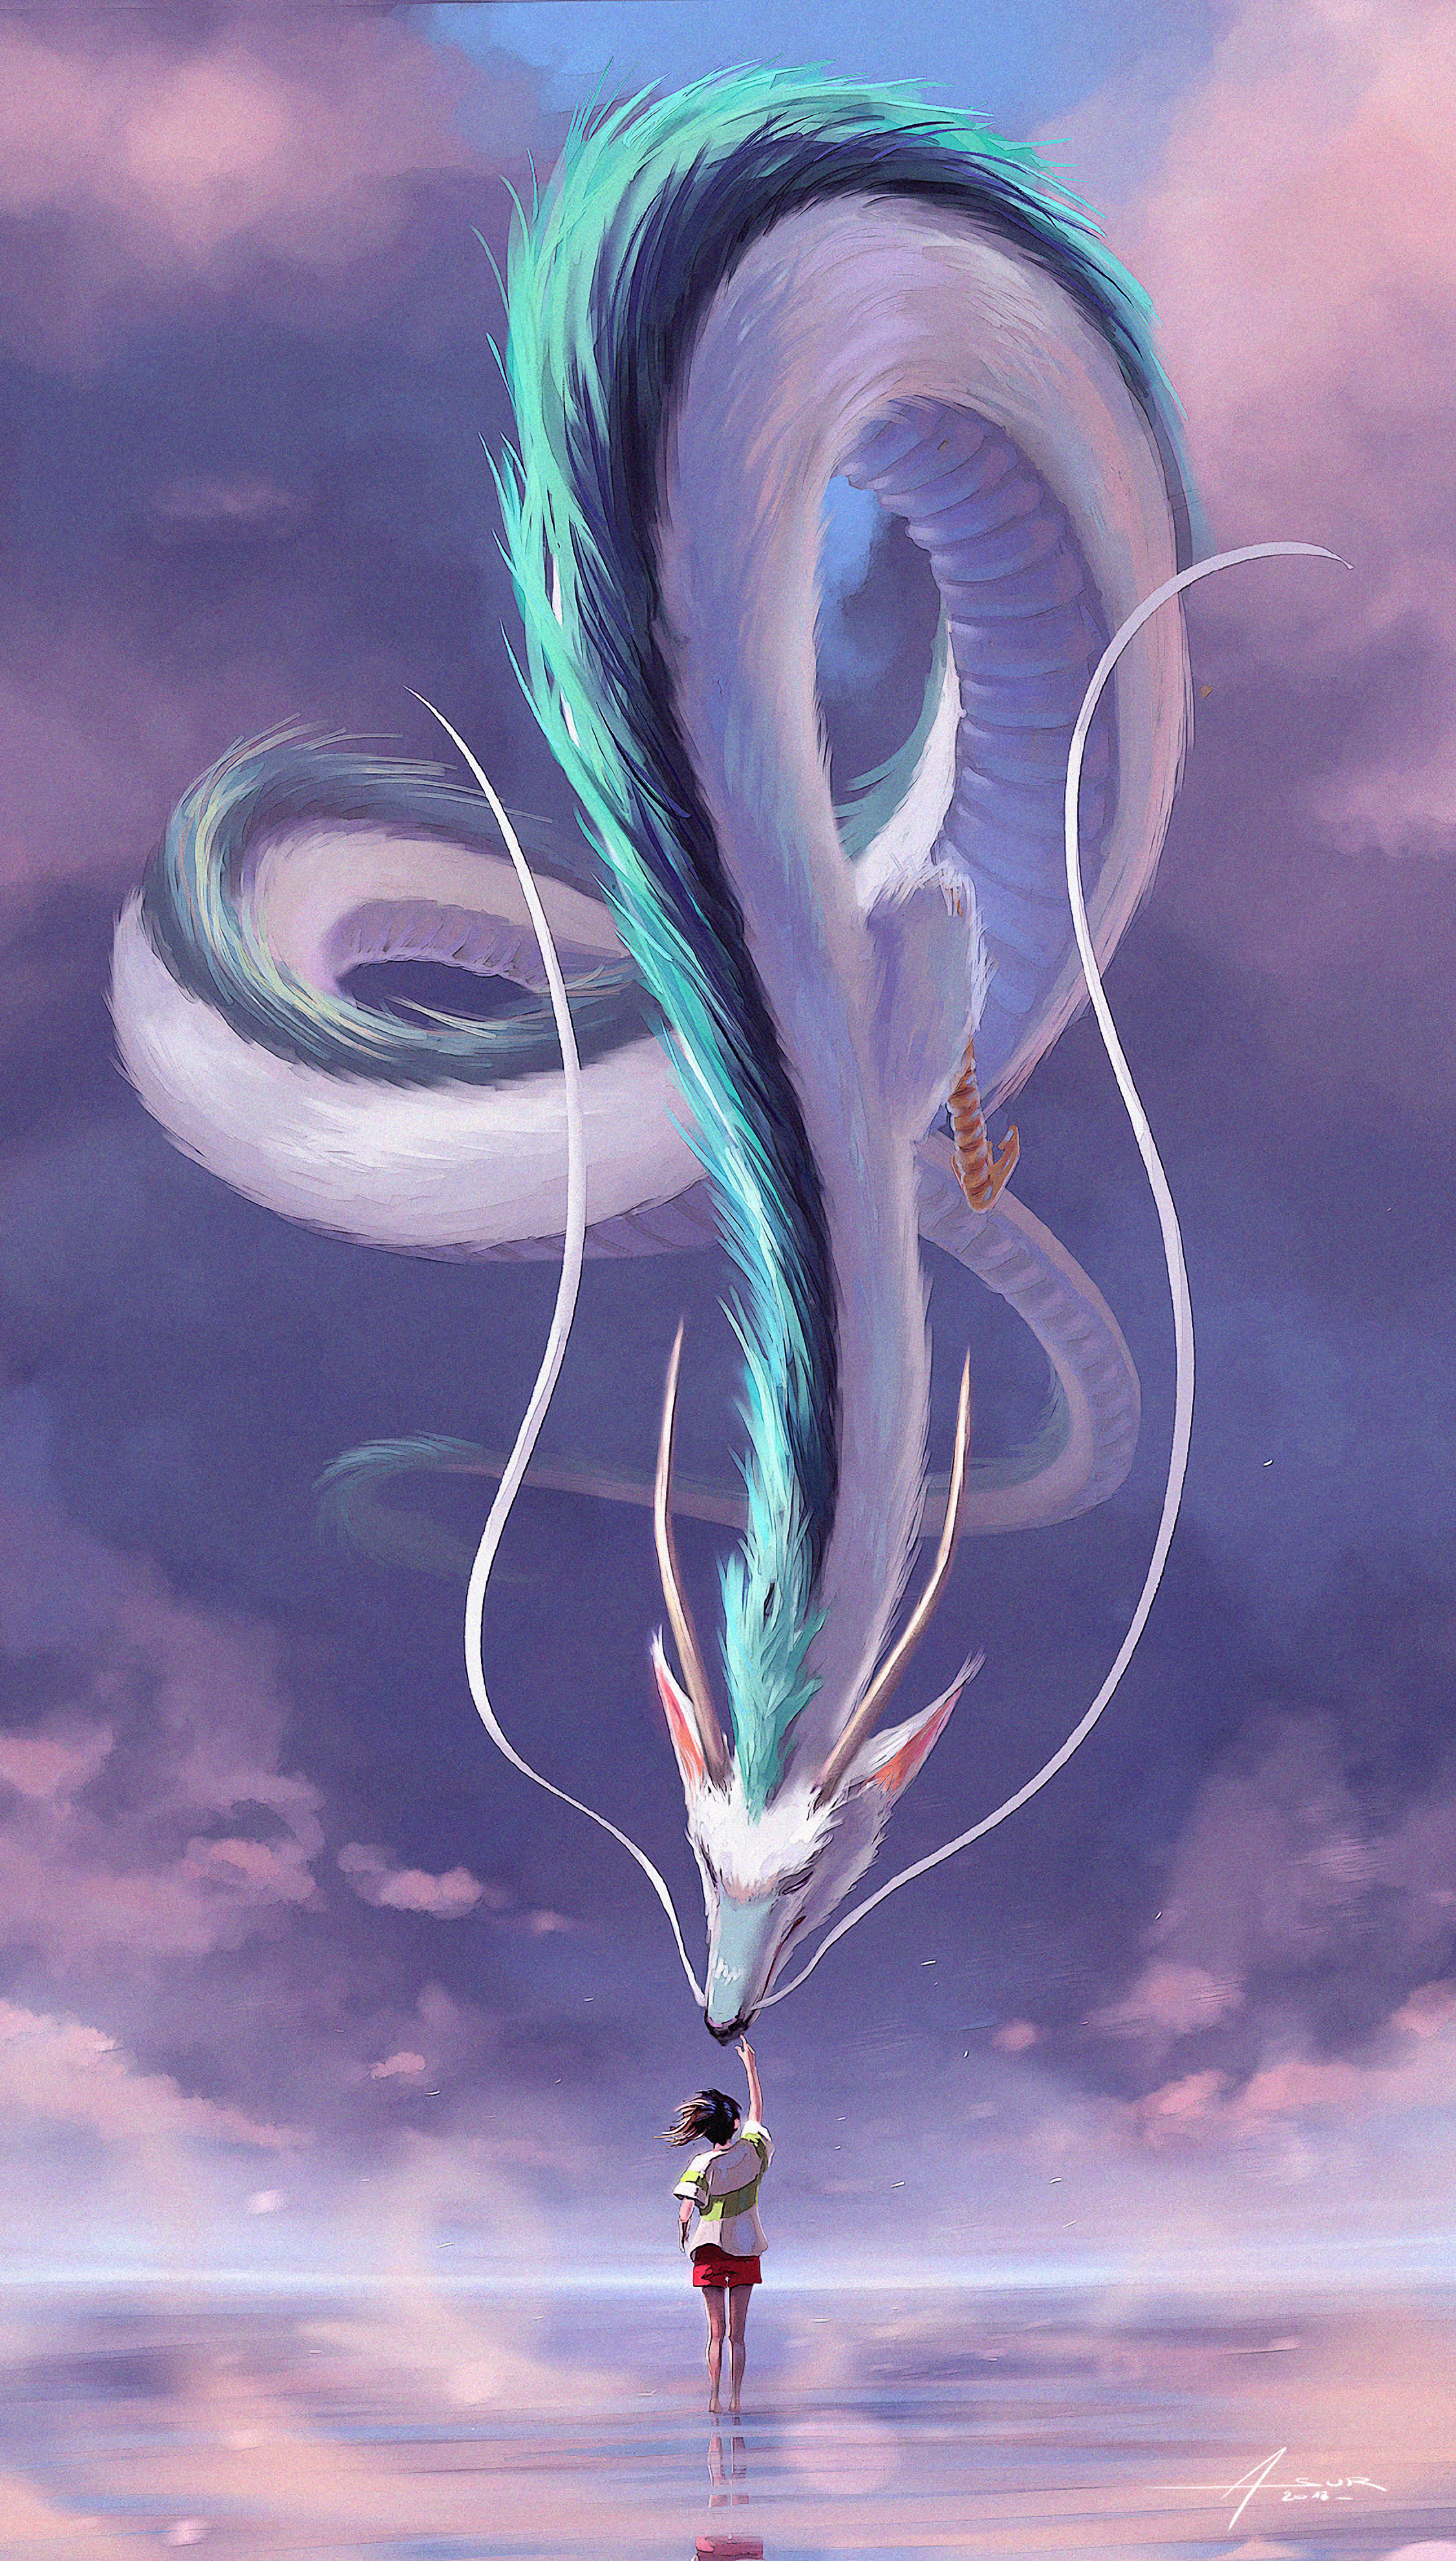 59777 Screensavers and Wallpapers Fiction for phone. Download Snakes, Art, Dragon, Human, Person, Fiction, That's Incredible pictures for free